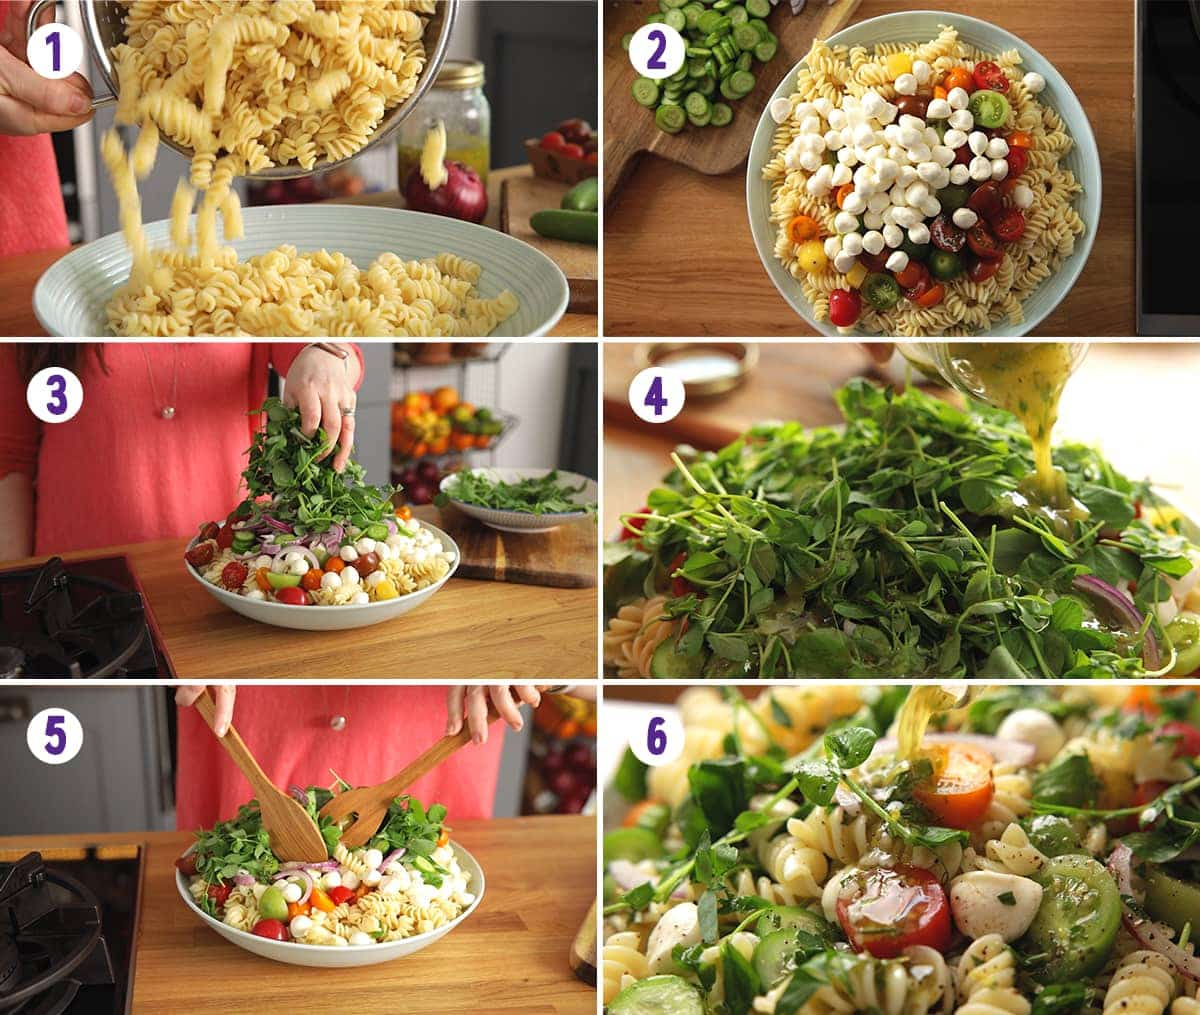 6 image collage showing how to make bowl of pasta salad